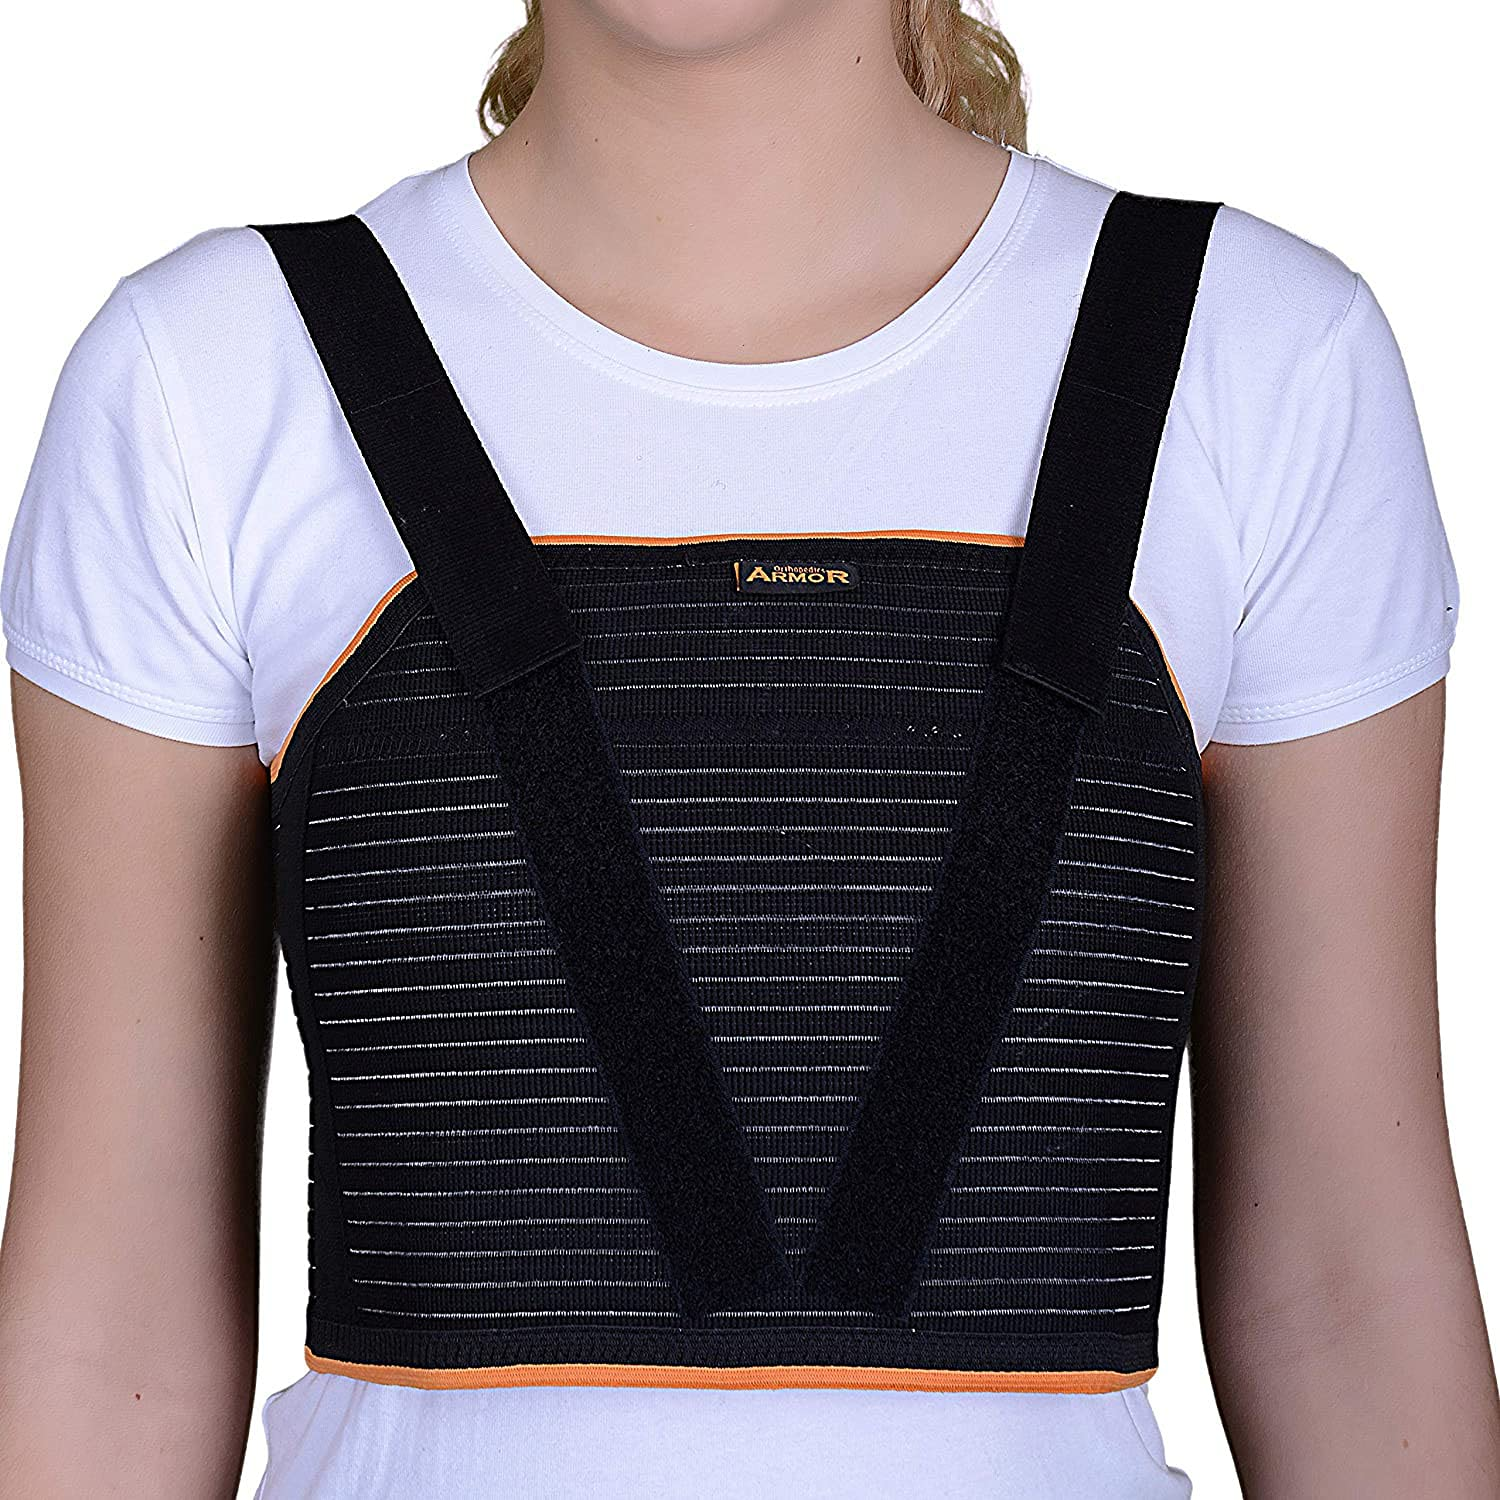 Armor Adult Unisex Chest Support Brace Thorax a Stabilize supreme to Seattle Mall the